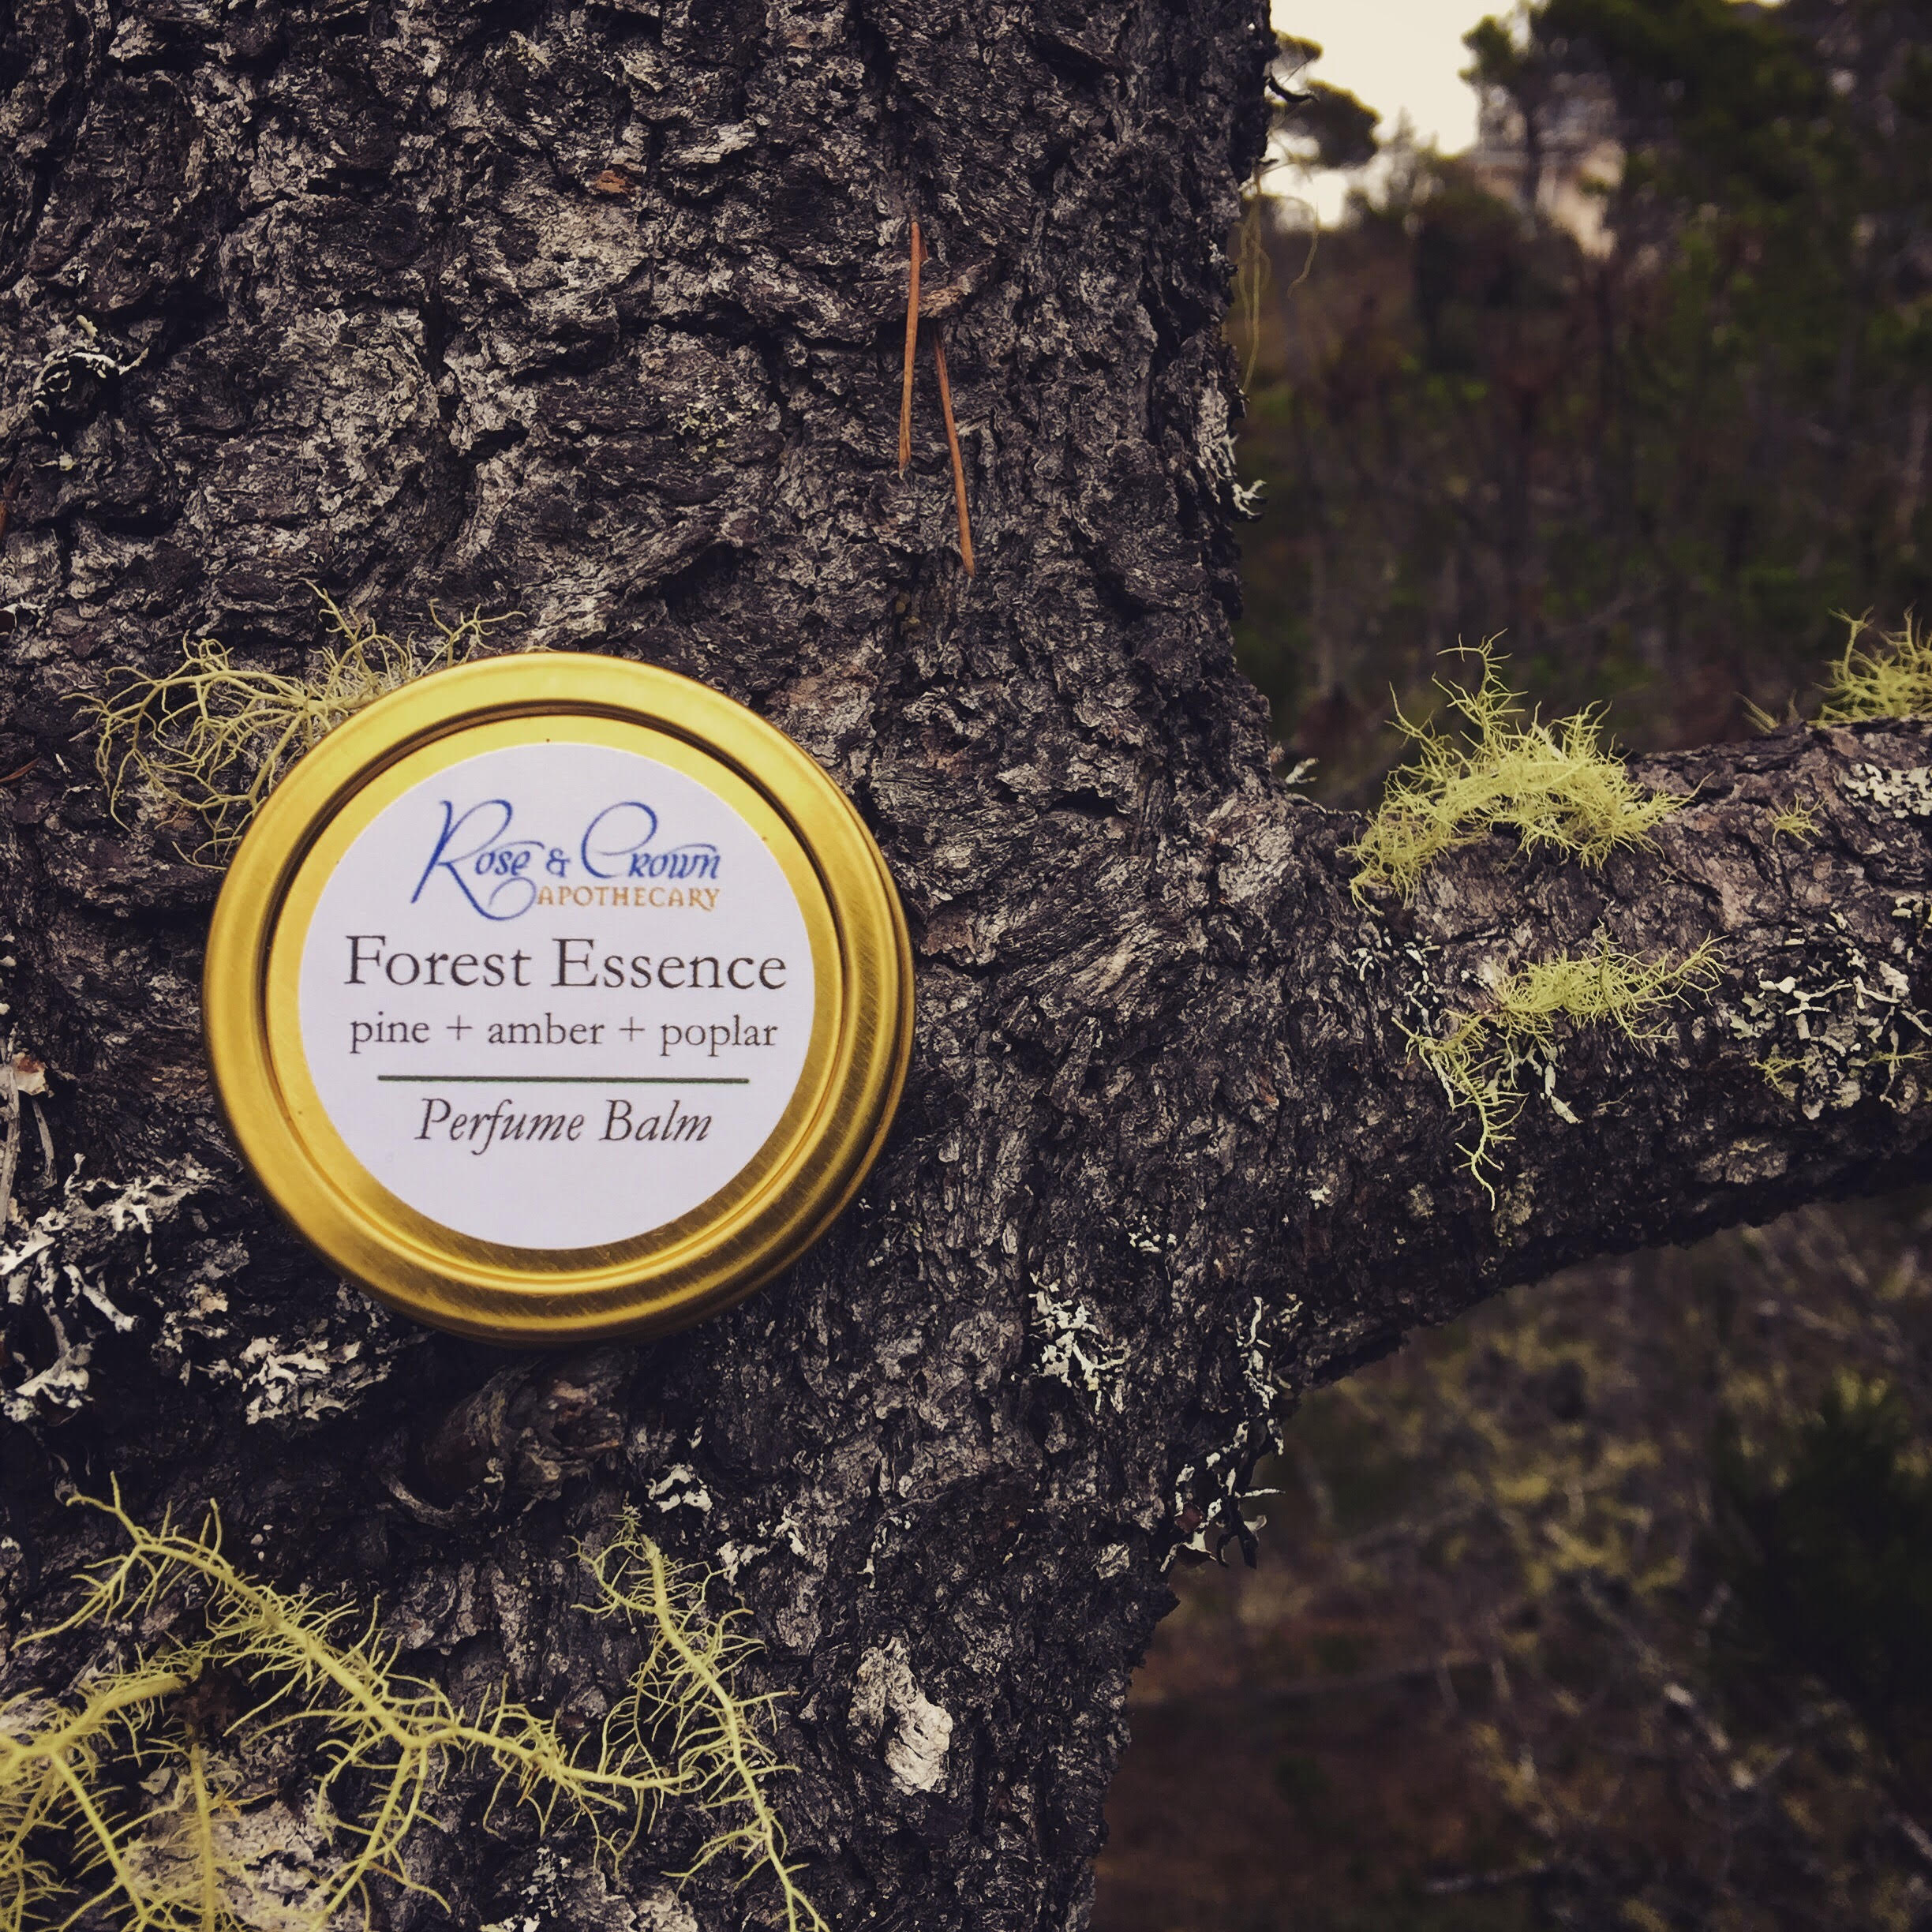 Forest Essence Perfume Balm